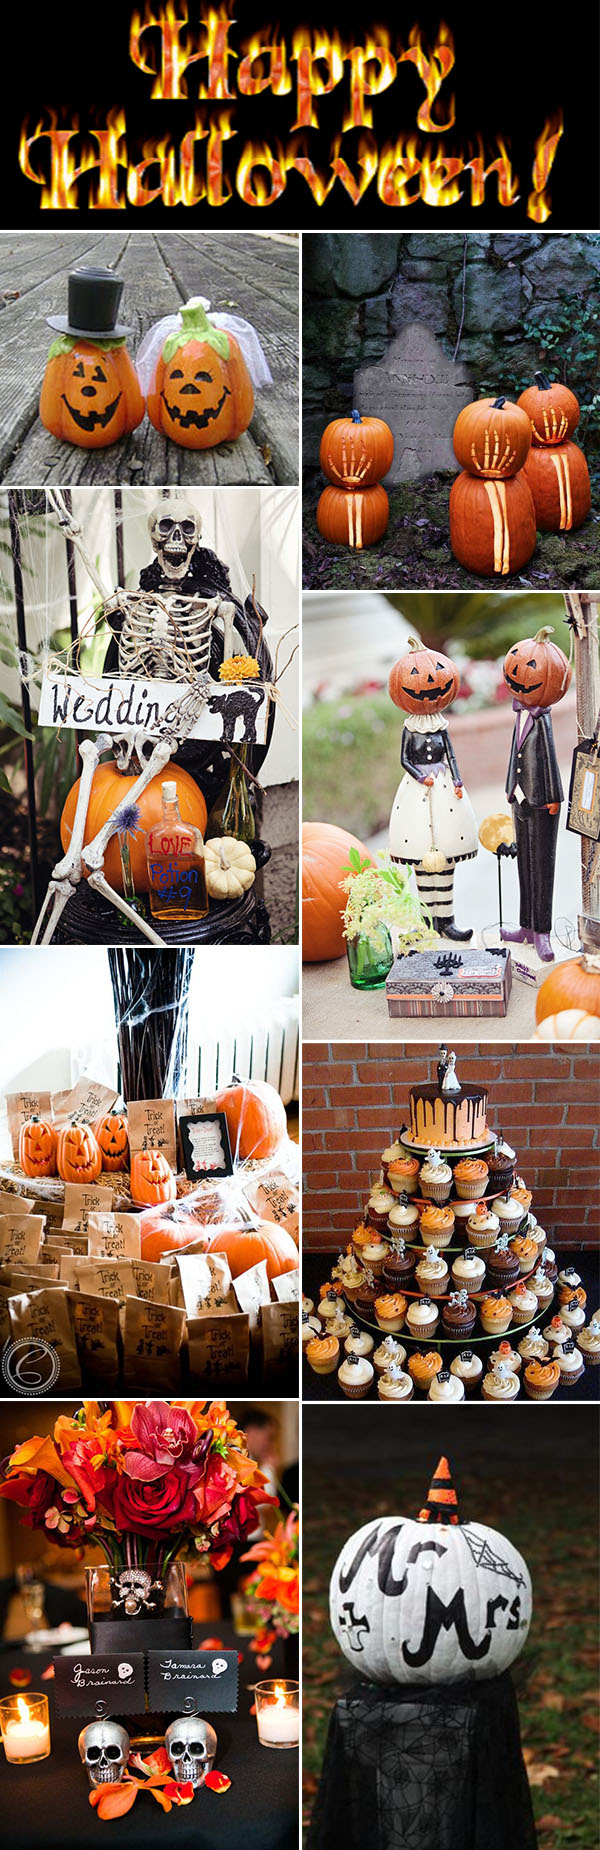 Orange and Black Pumpkin Fall Happy Halloween Themed Wedding Ideas